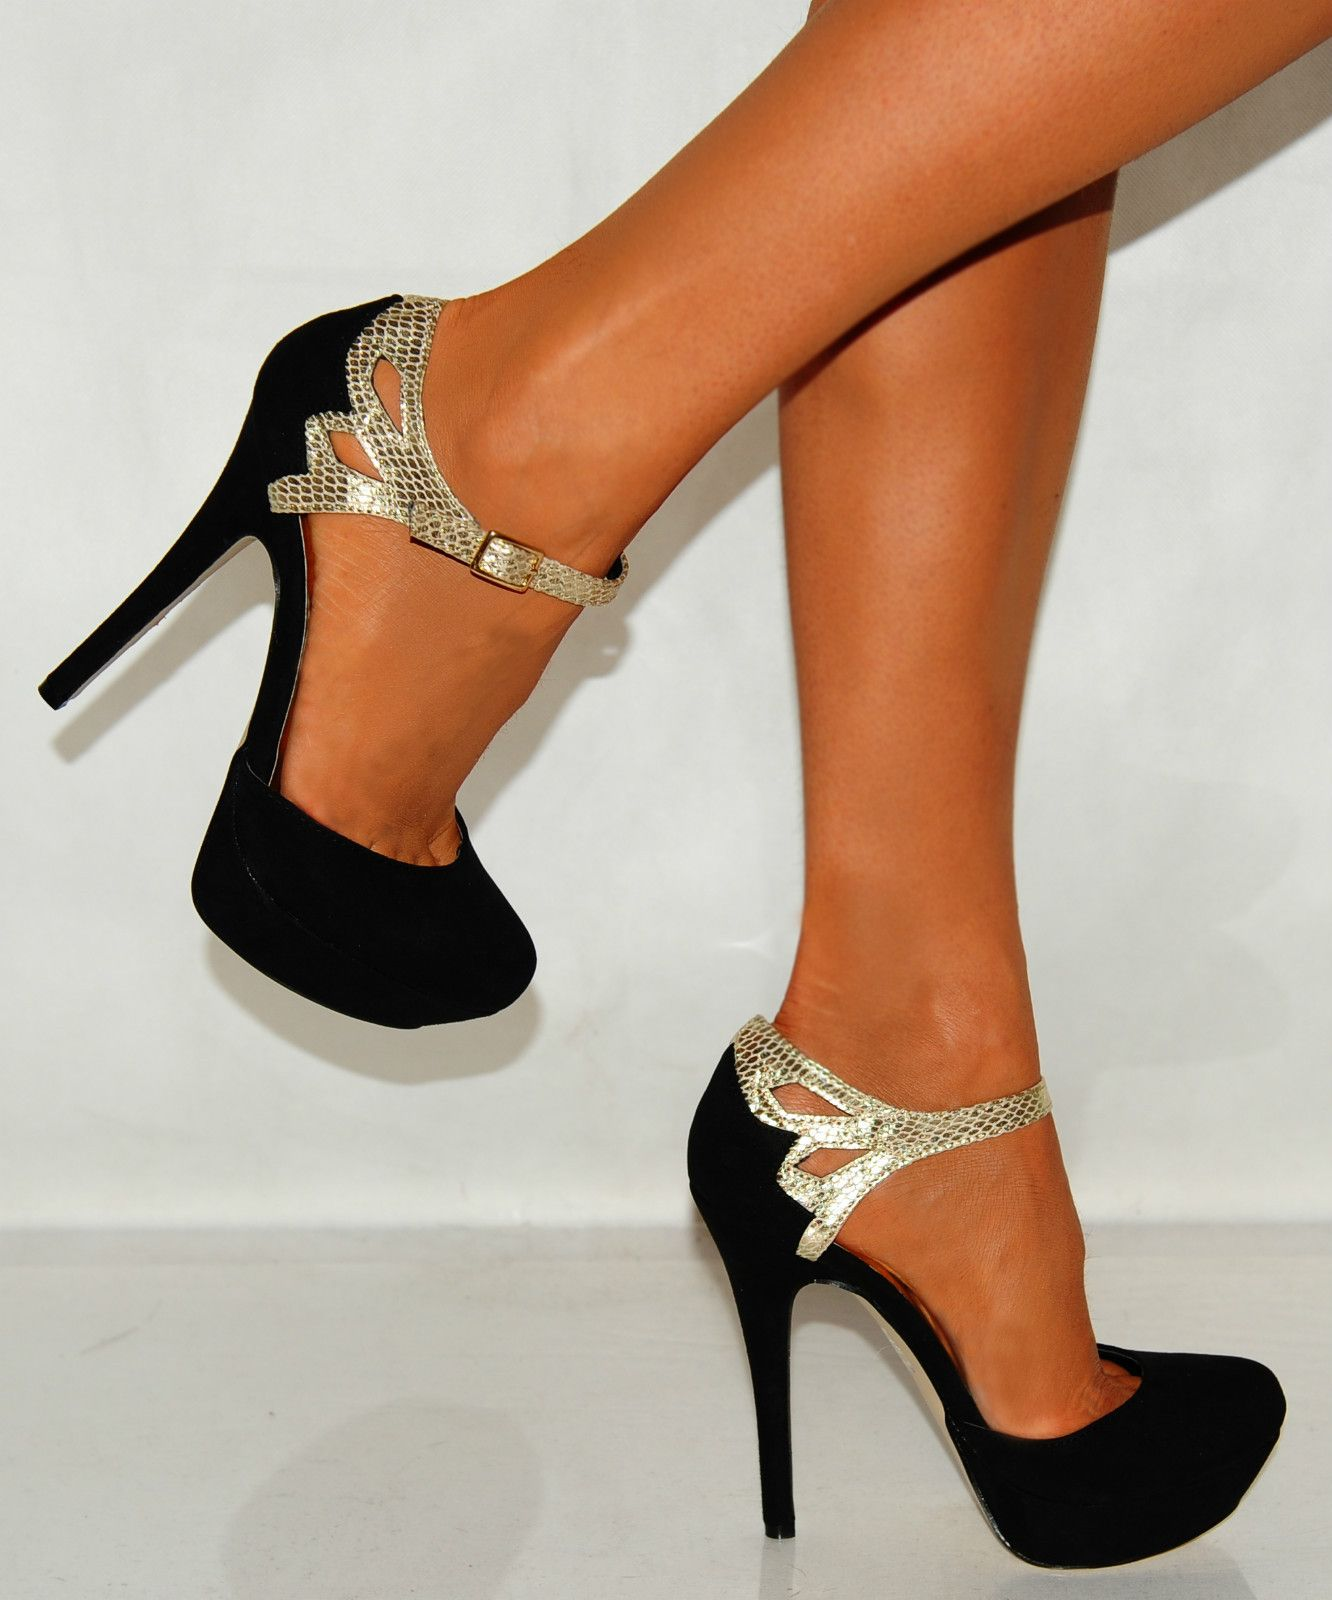 acc6b253e164 Black suede gold snake print strappy sandals party platforms high ...